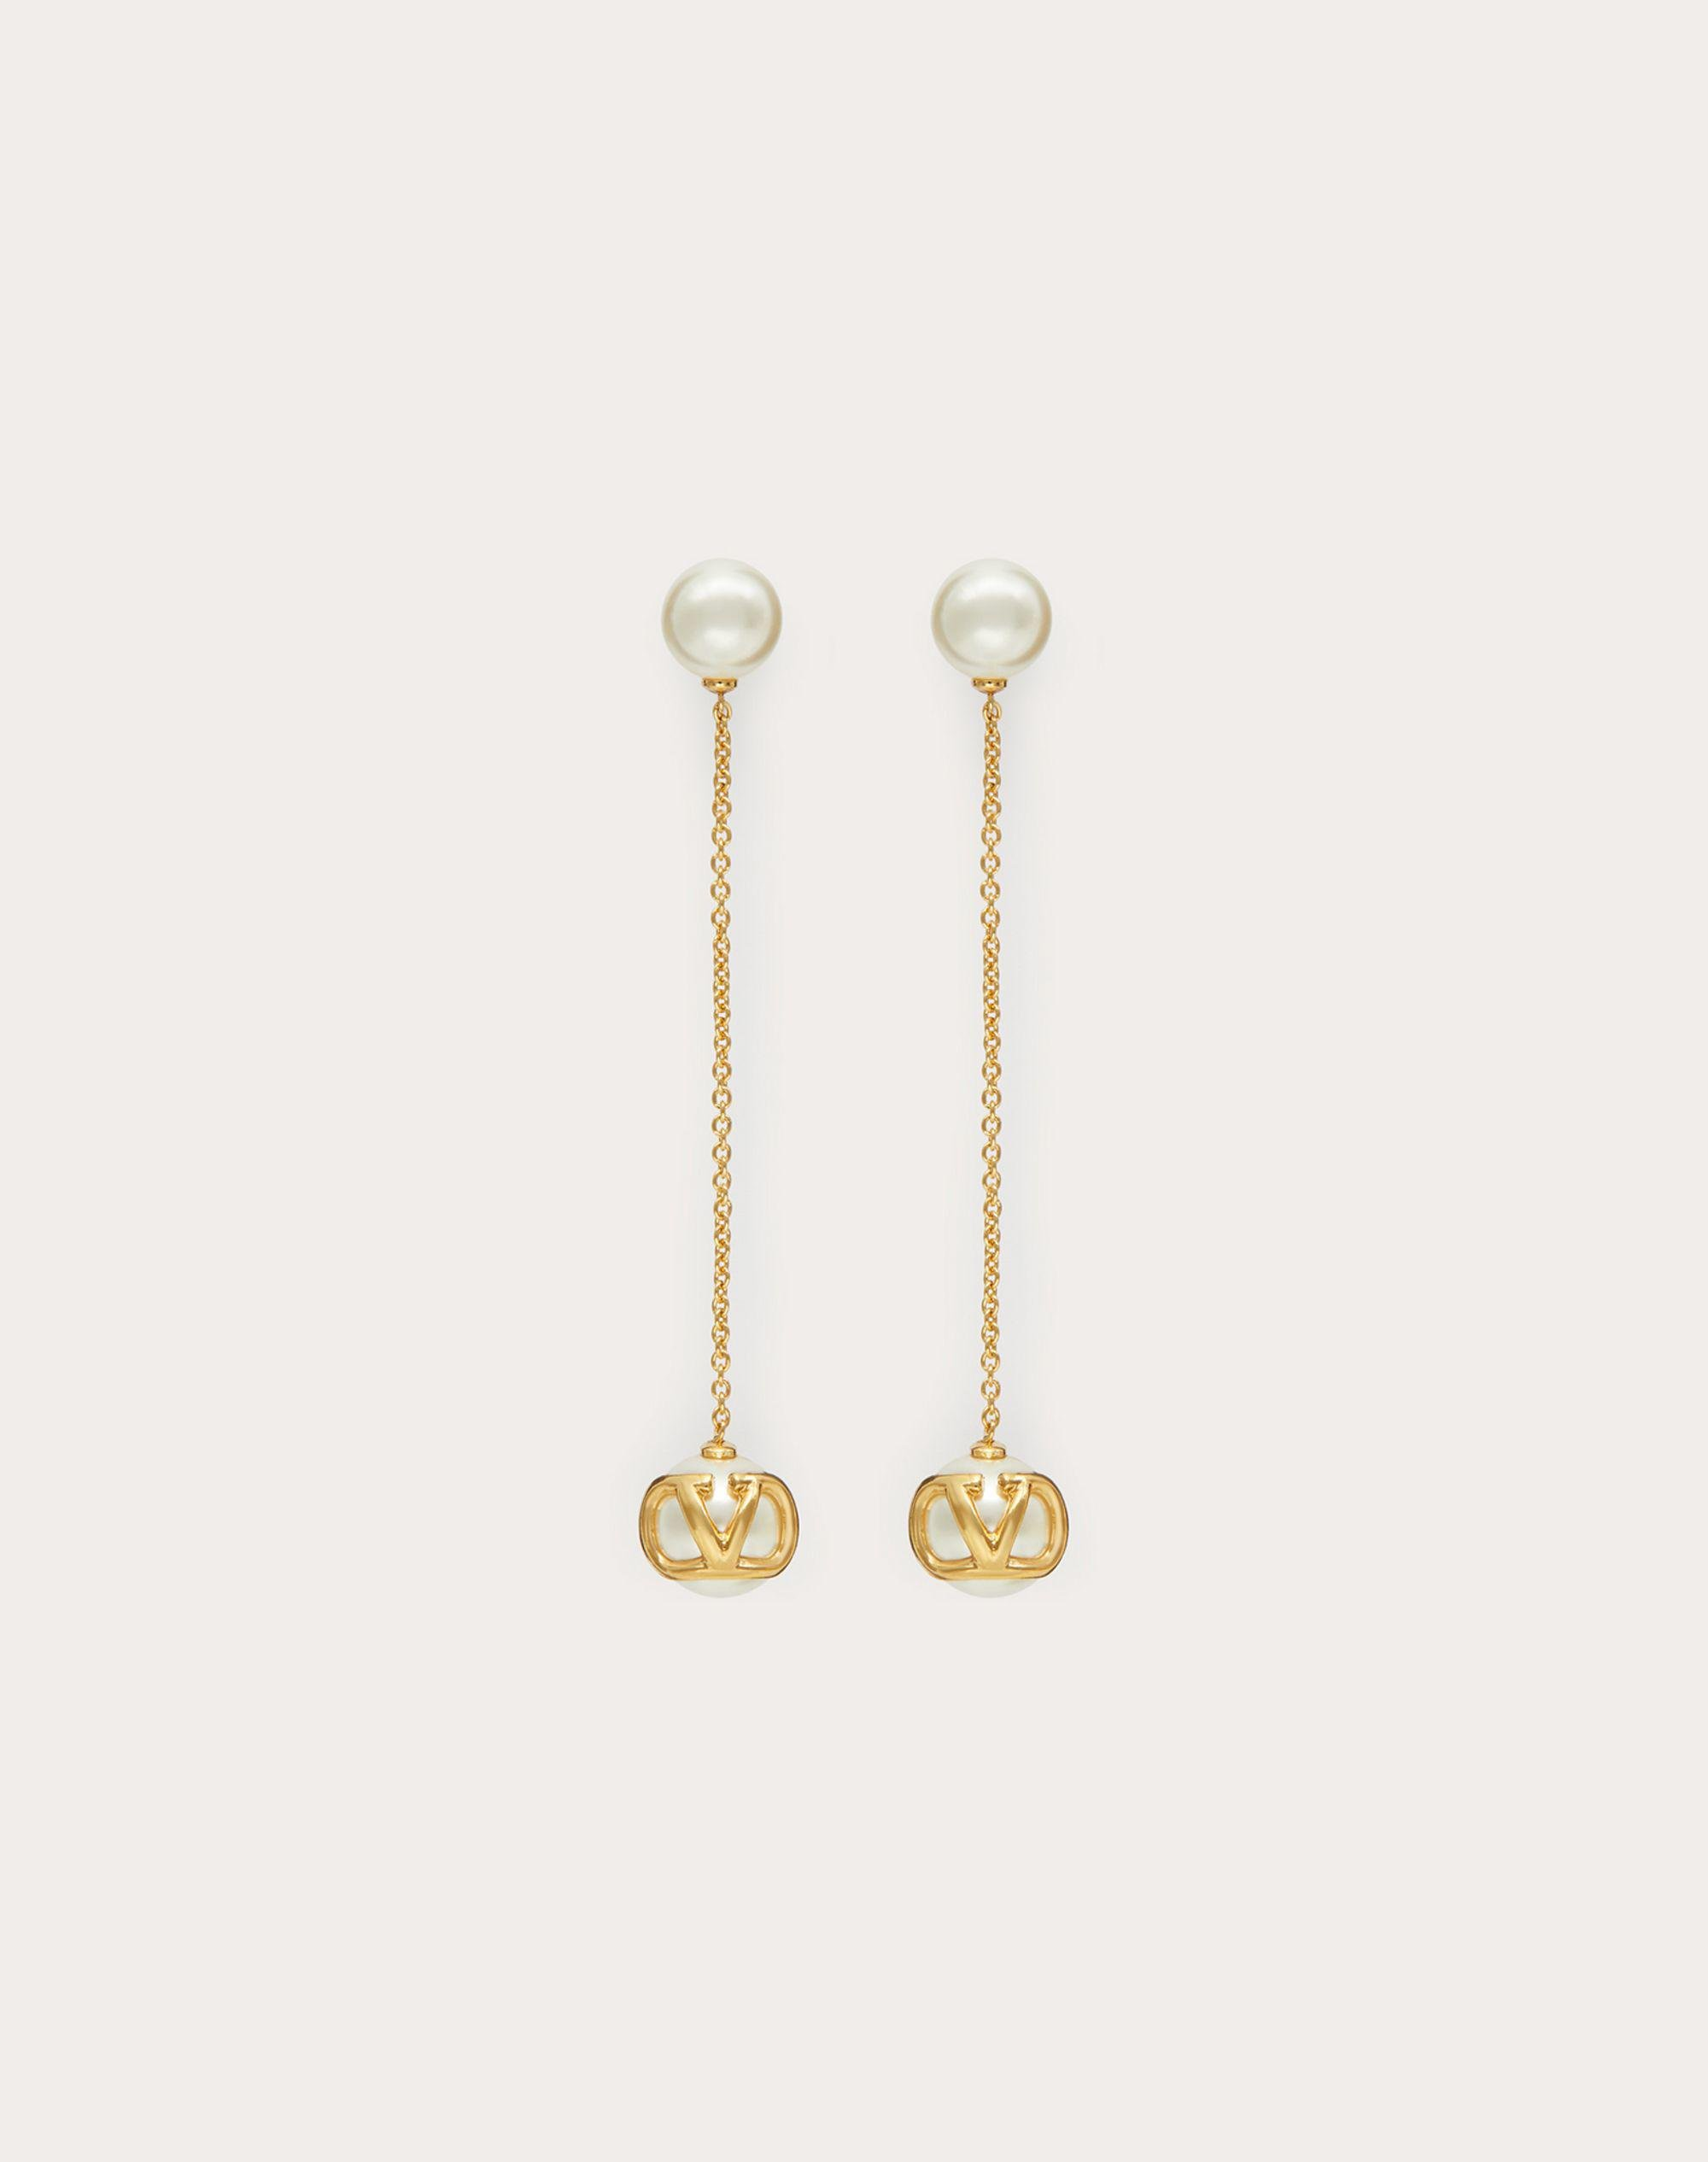 VLogo Signature earrings with pearls